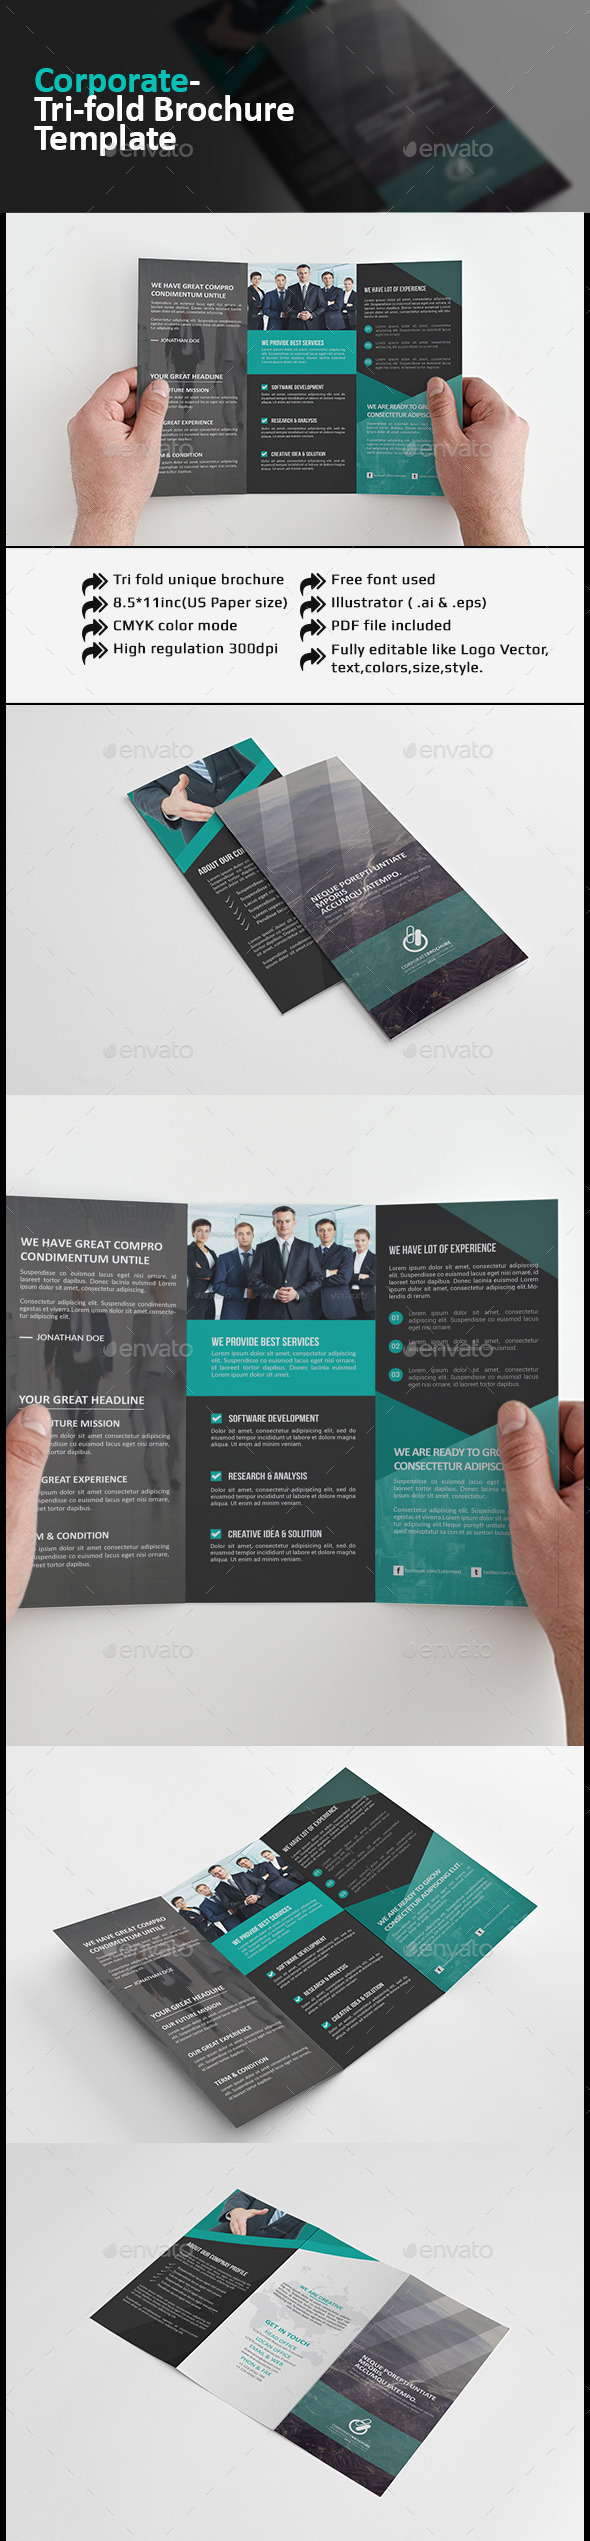 GraphicRiver Corporate Tri-fold Brochure 11950364